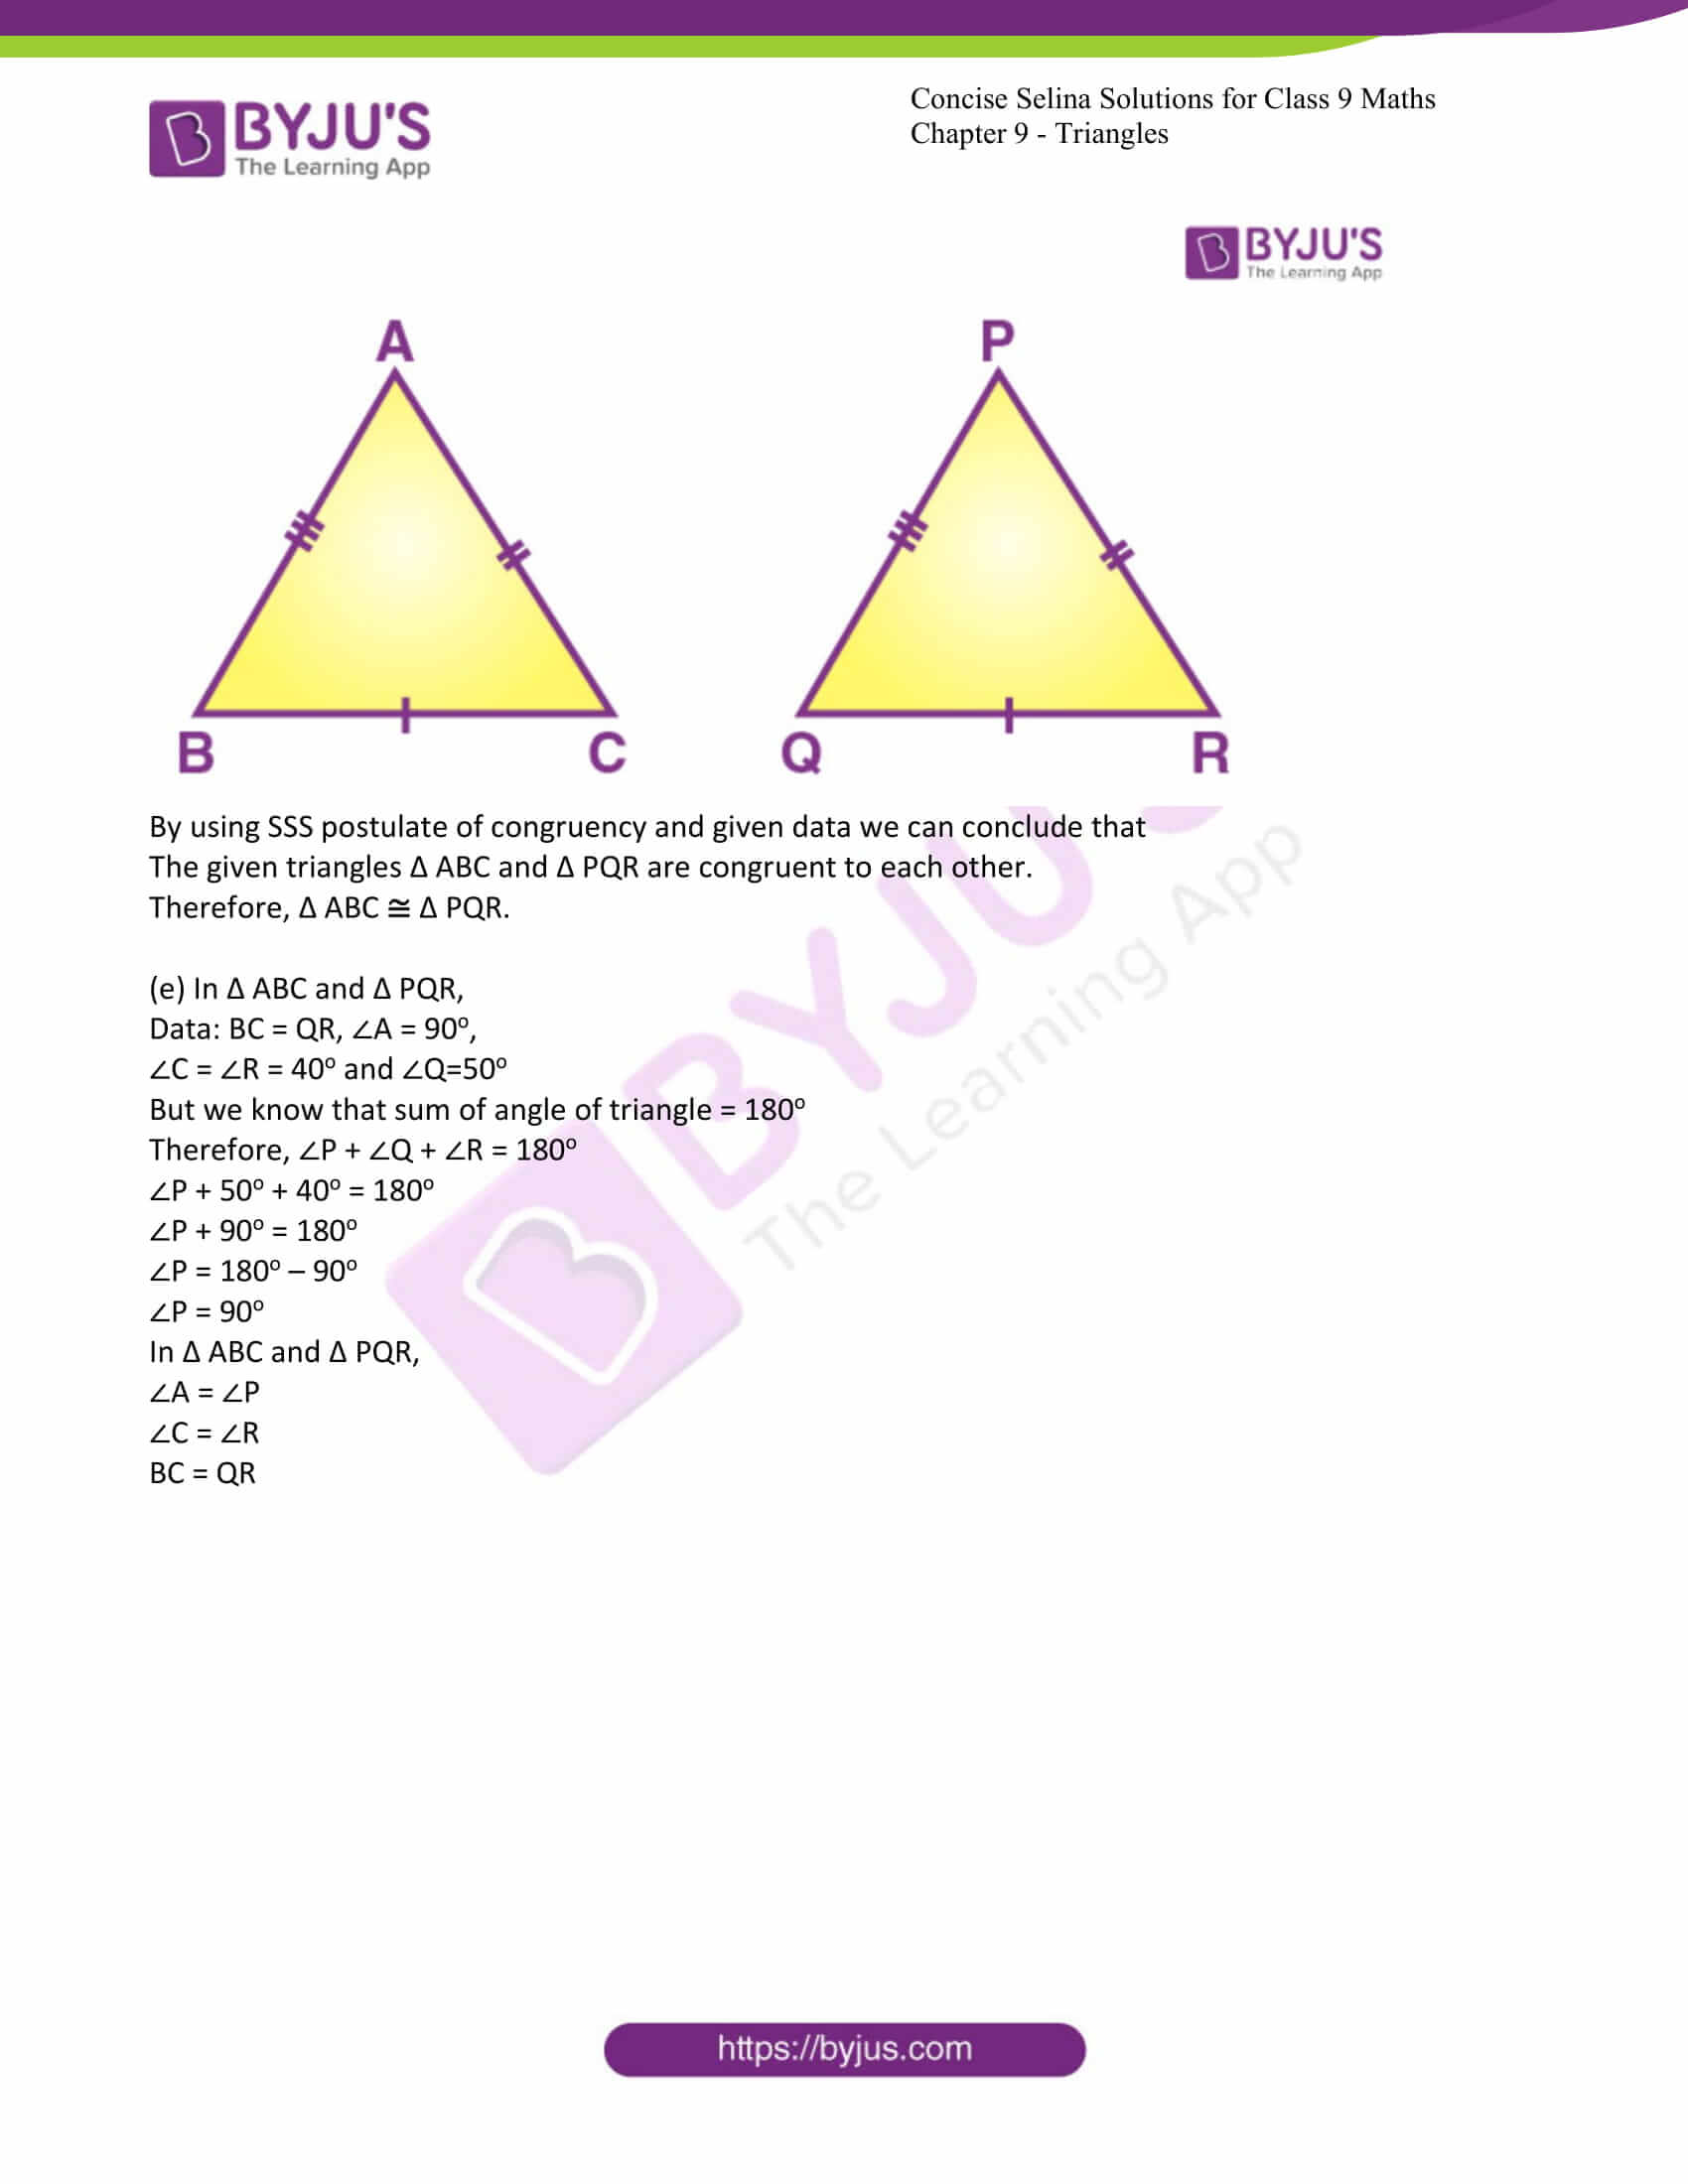 icse class 9 maths may10 selina solutions chapter 9 triangles 03